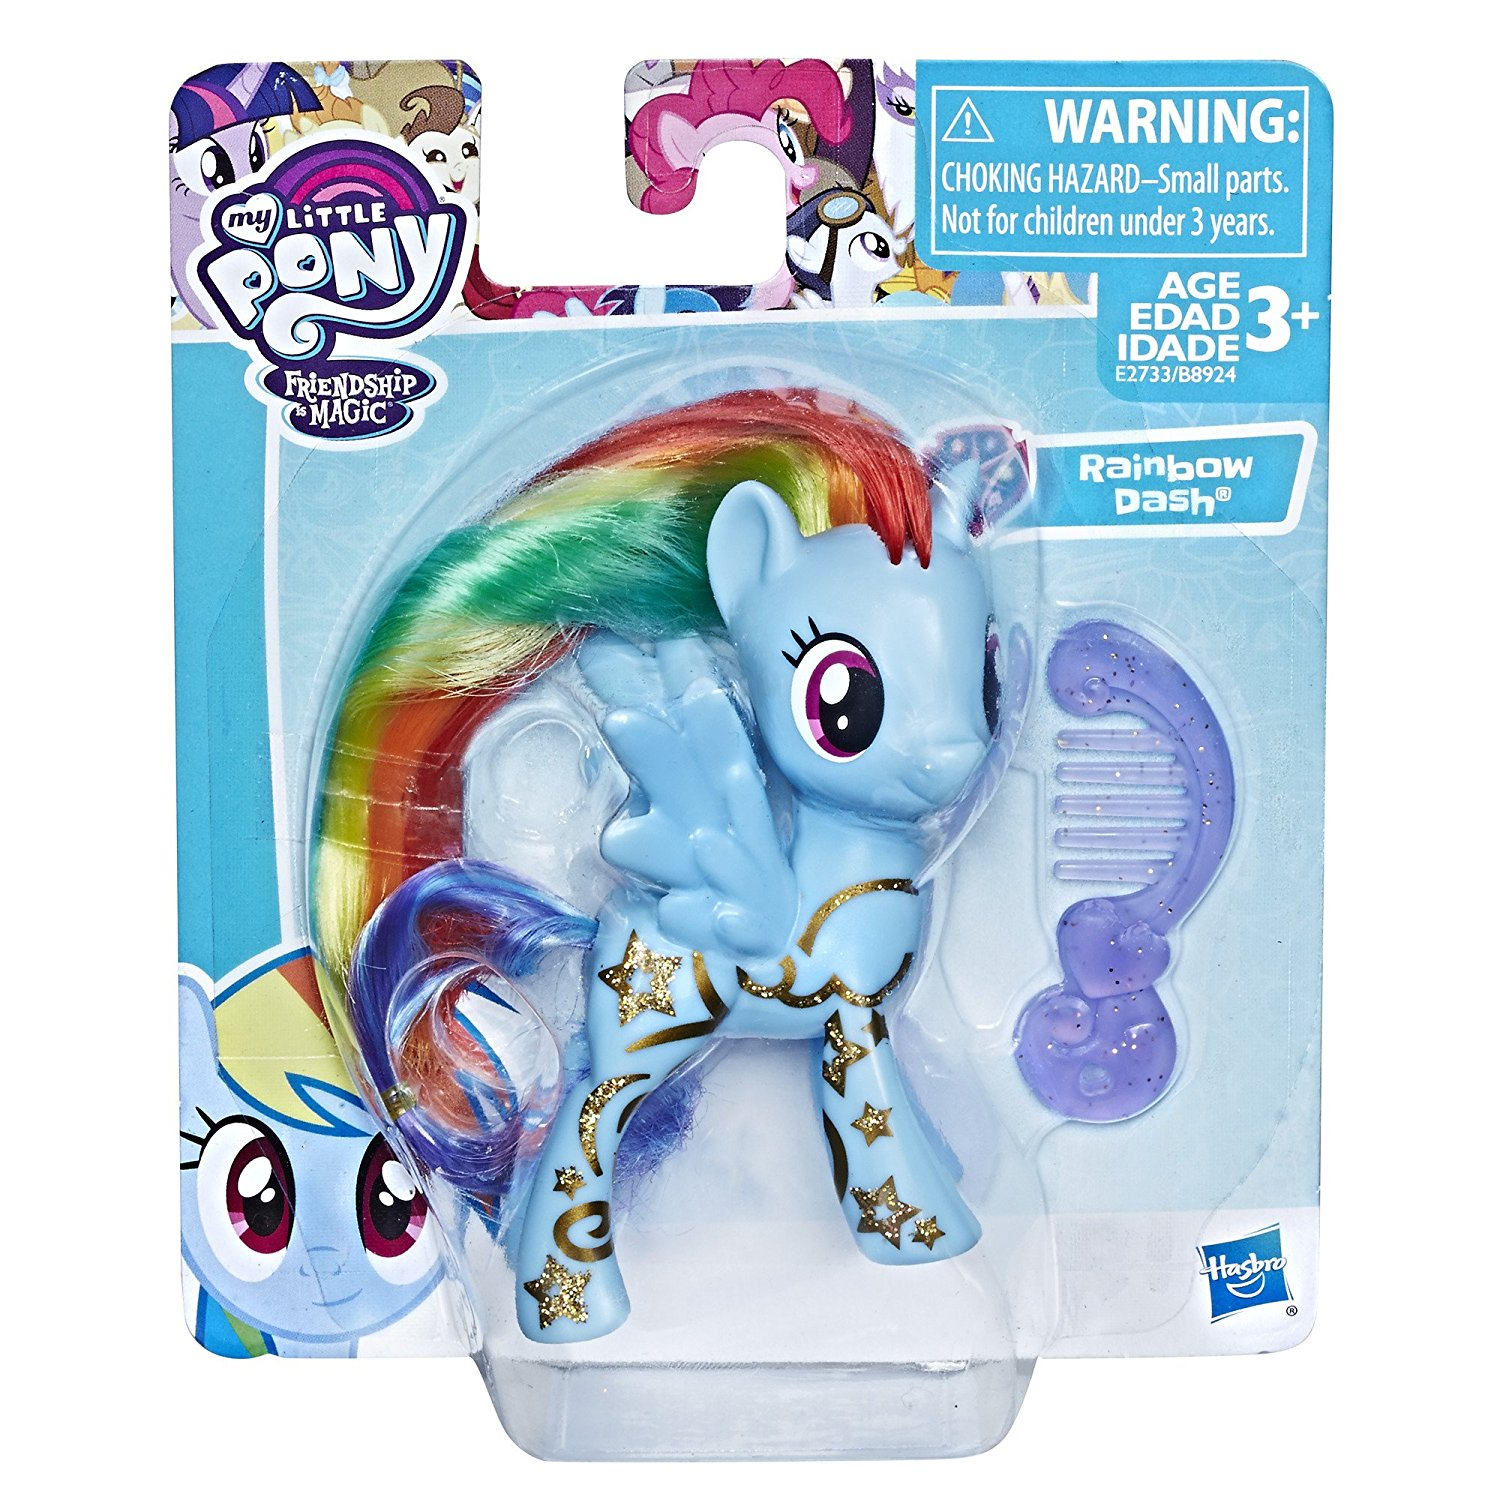 Rainbow Dash Pony Friends School Of Friendship Singles also Custom Plushie Ponification Bowsette By Legadema Dcnsy also Rainbow Bdash Bsporty Bbeach Bfashion Bequestria Bgirls Bmini B B also Owlowiscious Scared S E further Latest Cb. on trixie and twilight sparkle